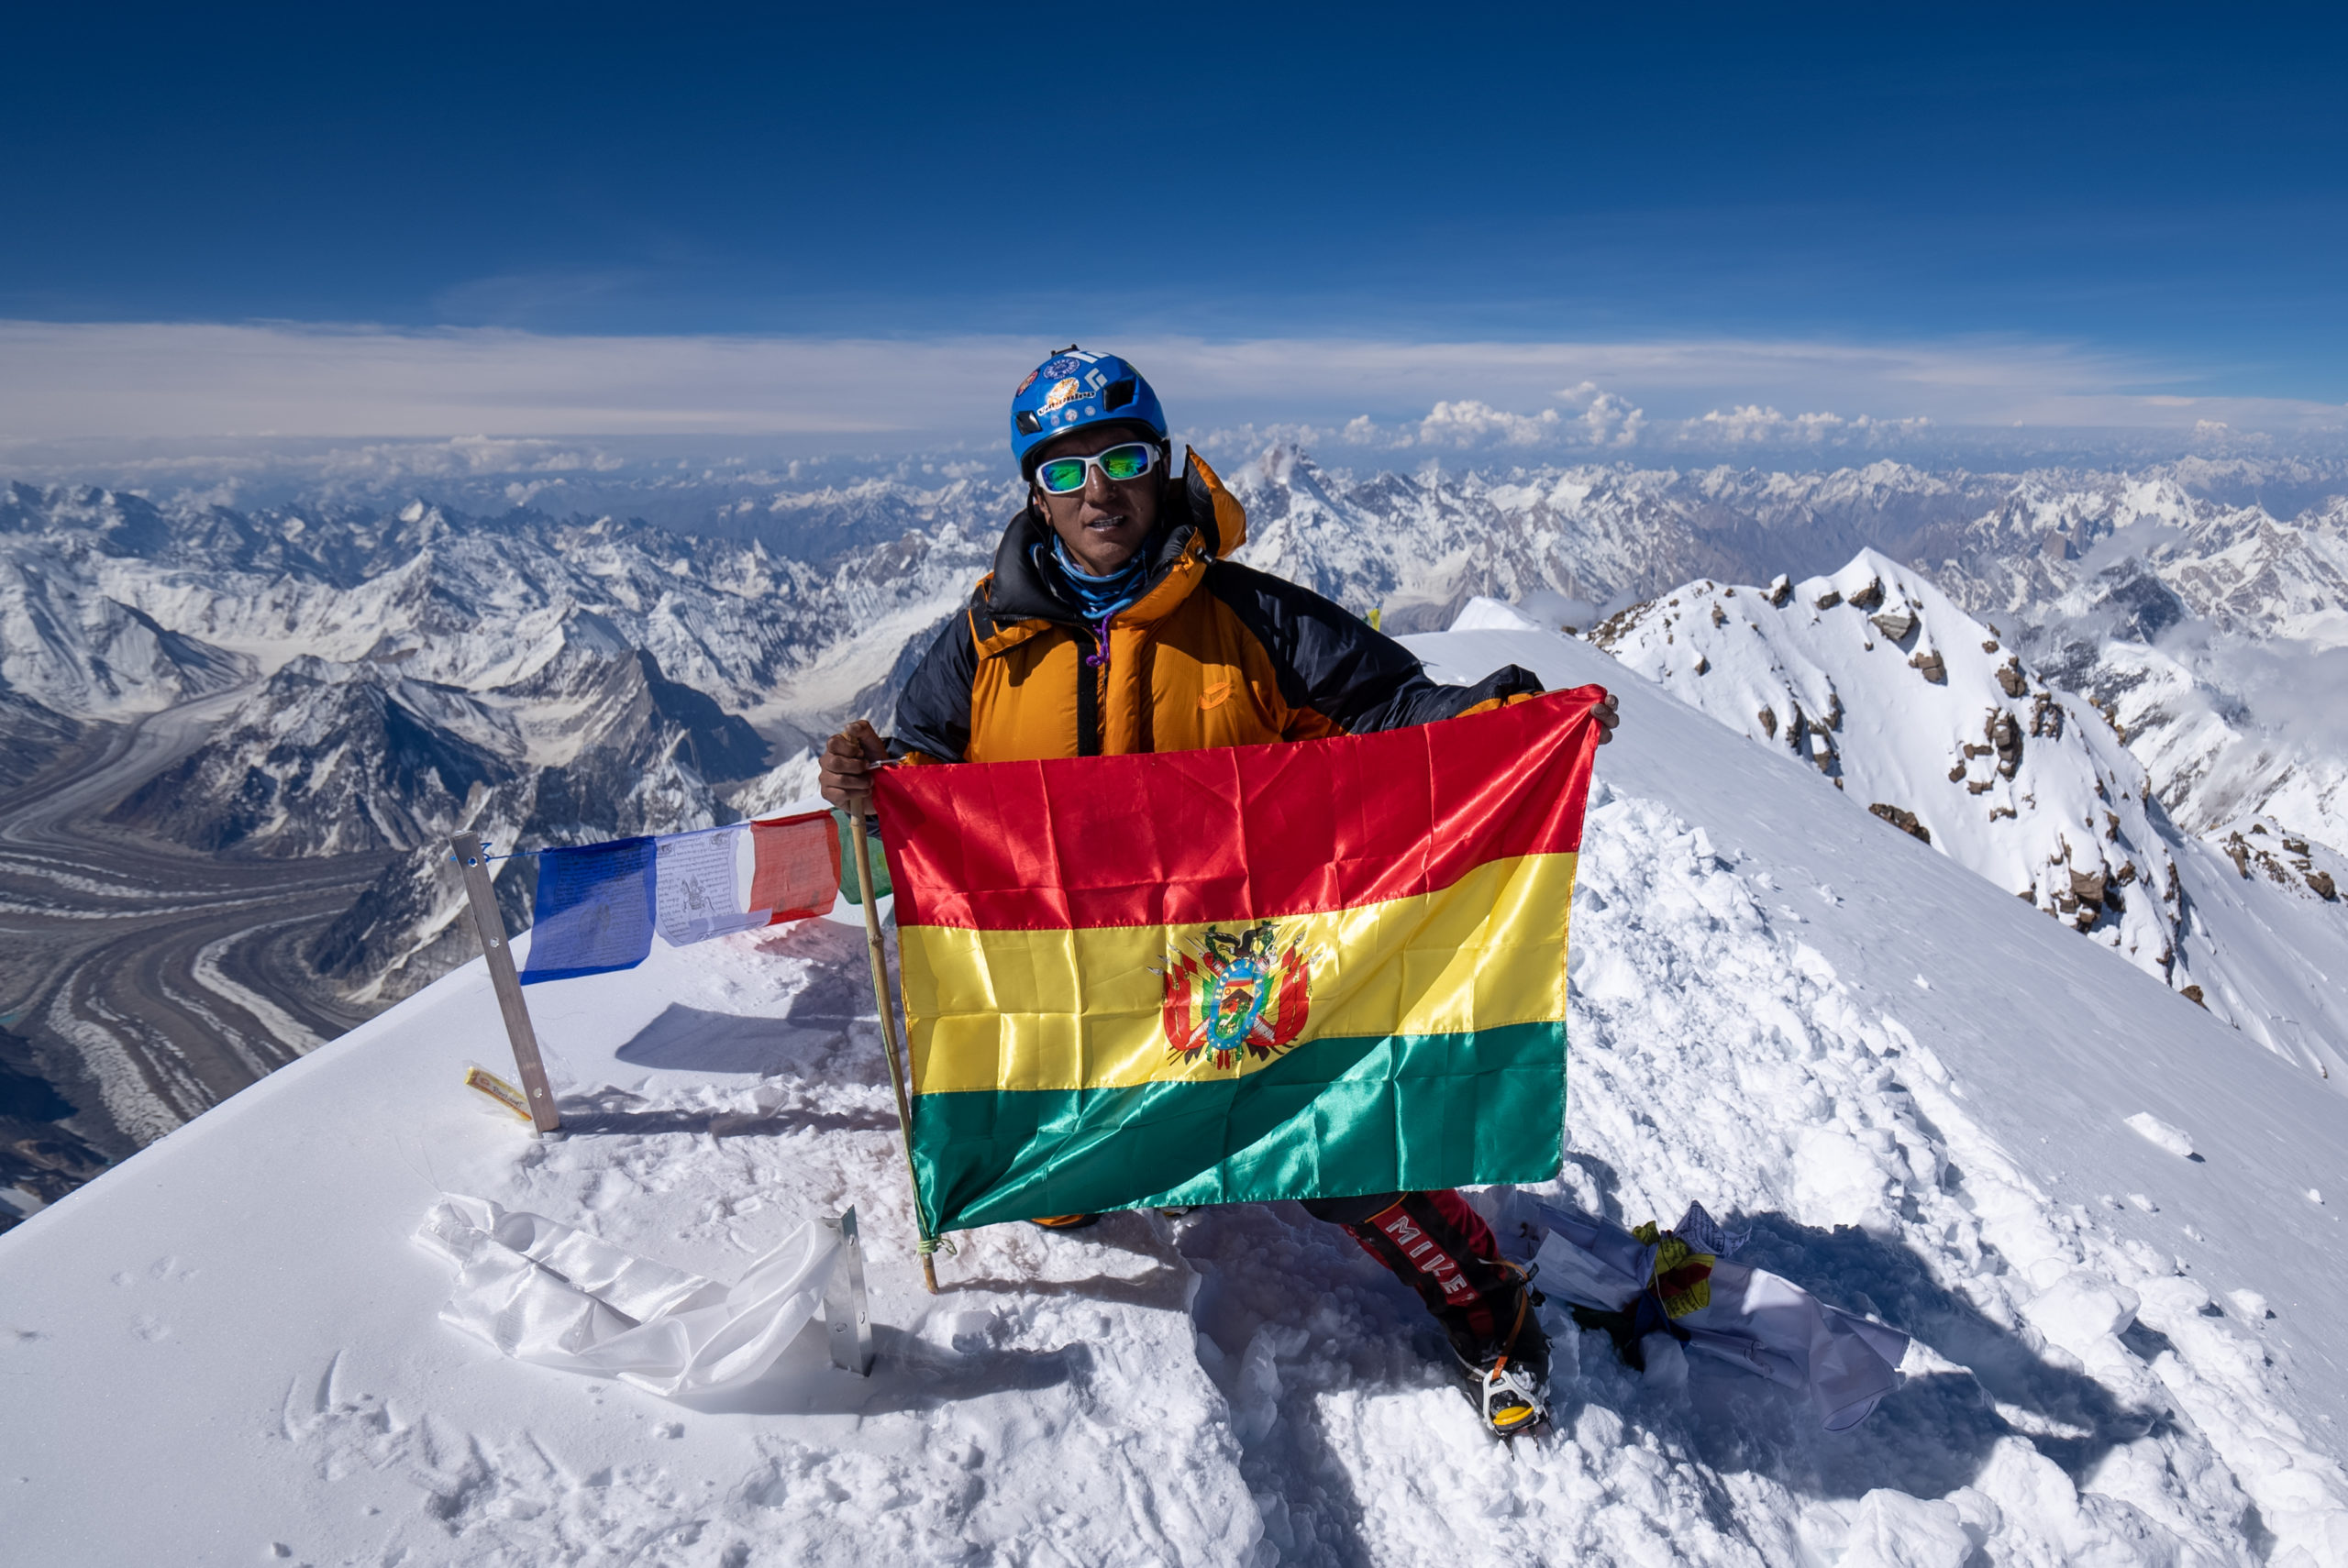 The dream is becoming true and a feat is entering the Himalaya history